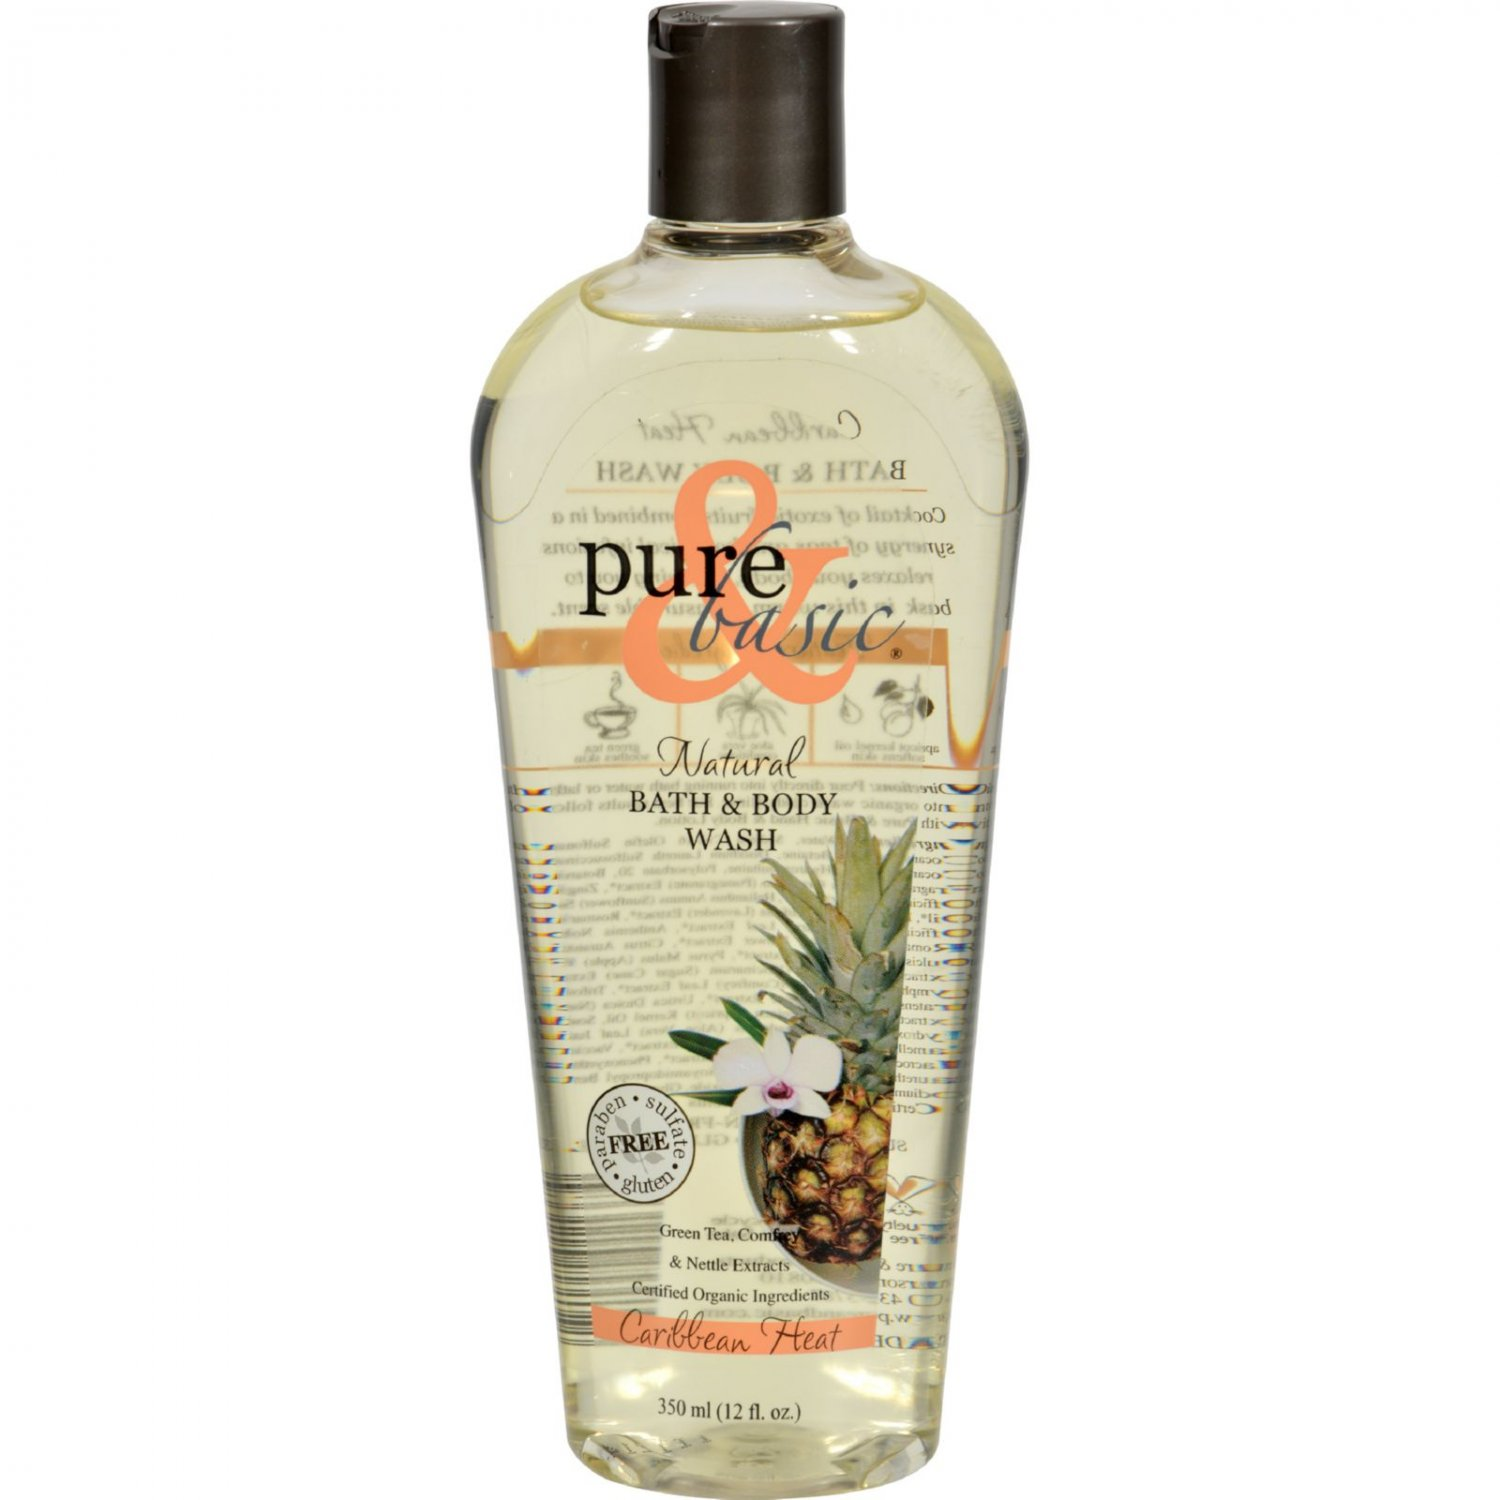 Pure and Basic Natural Bath and Body Wash Caribbean Heat - 12 fl oz